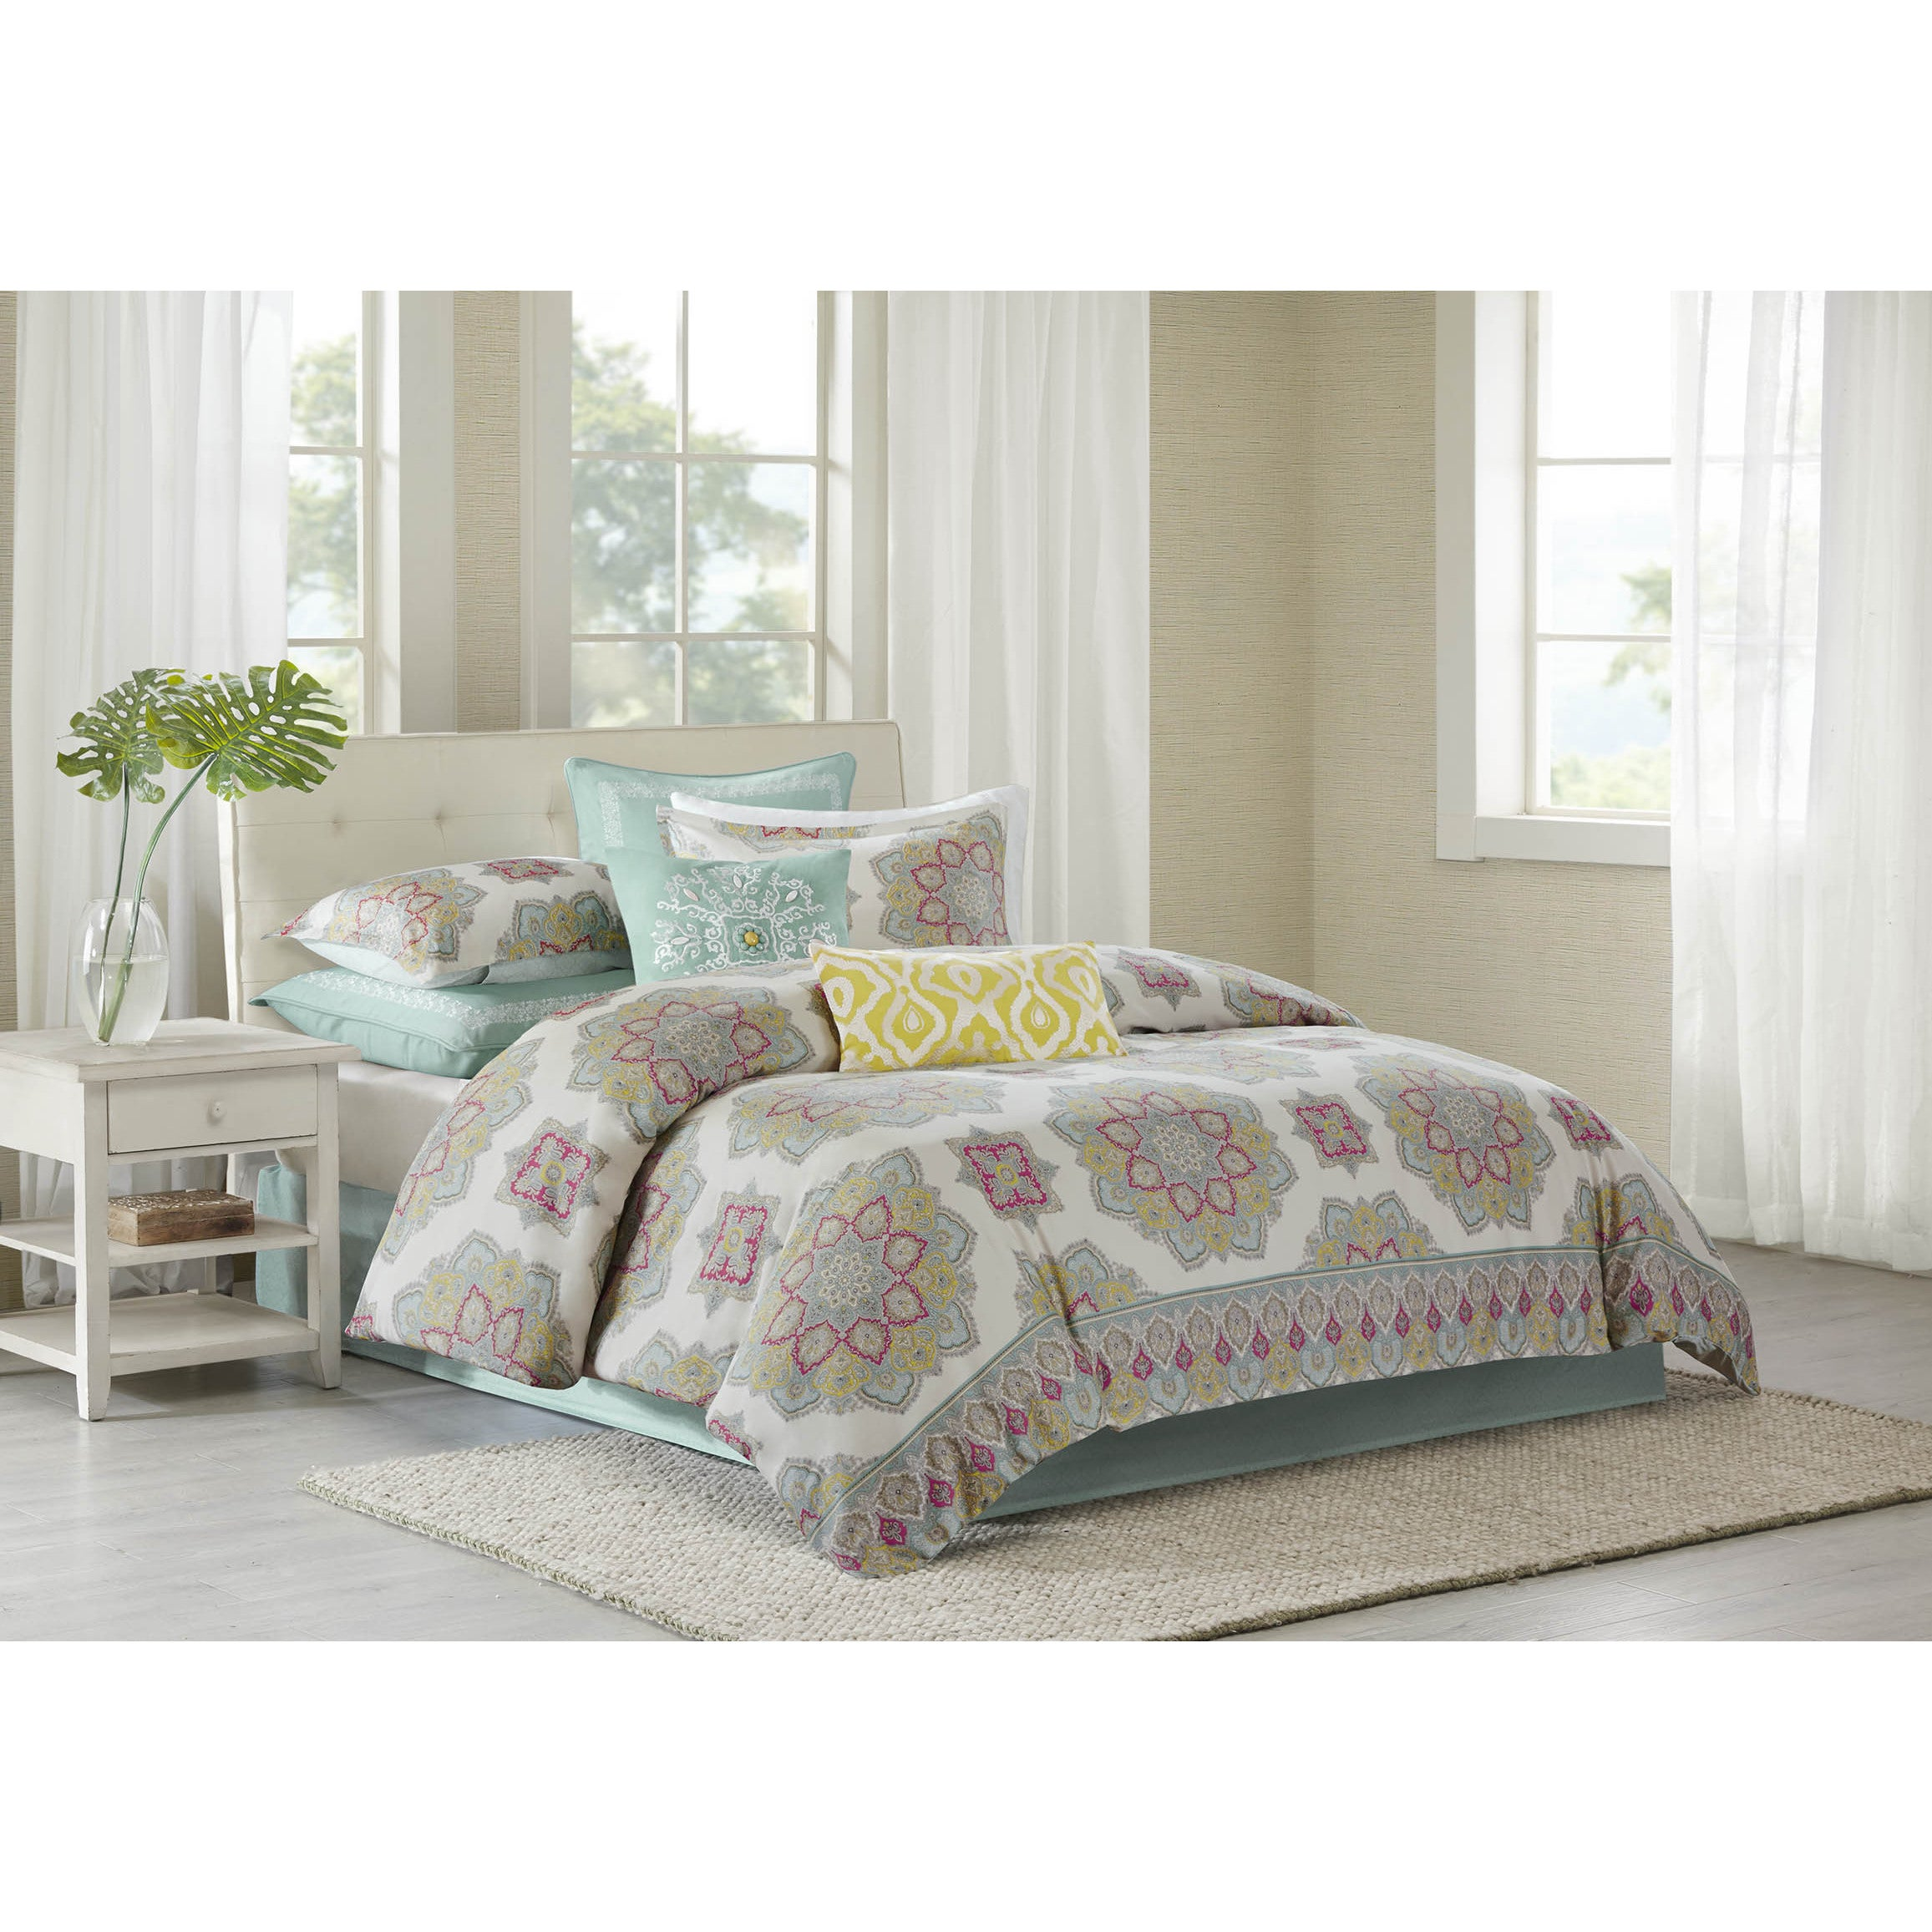 echo bed collection home headboard with jaipur mantle pin bedding comforters